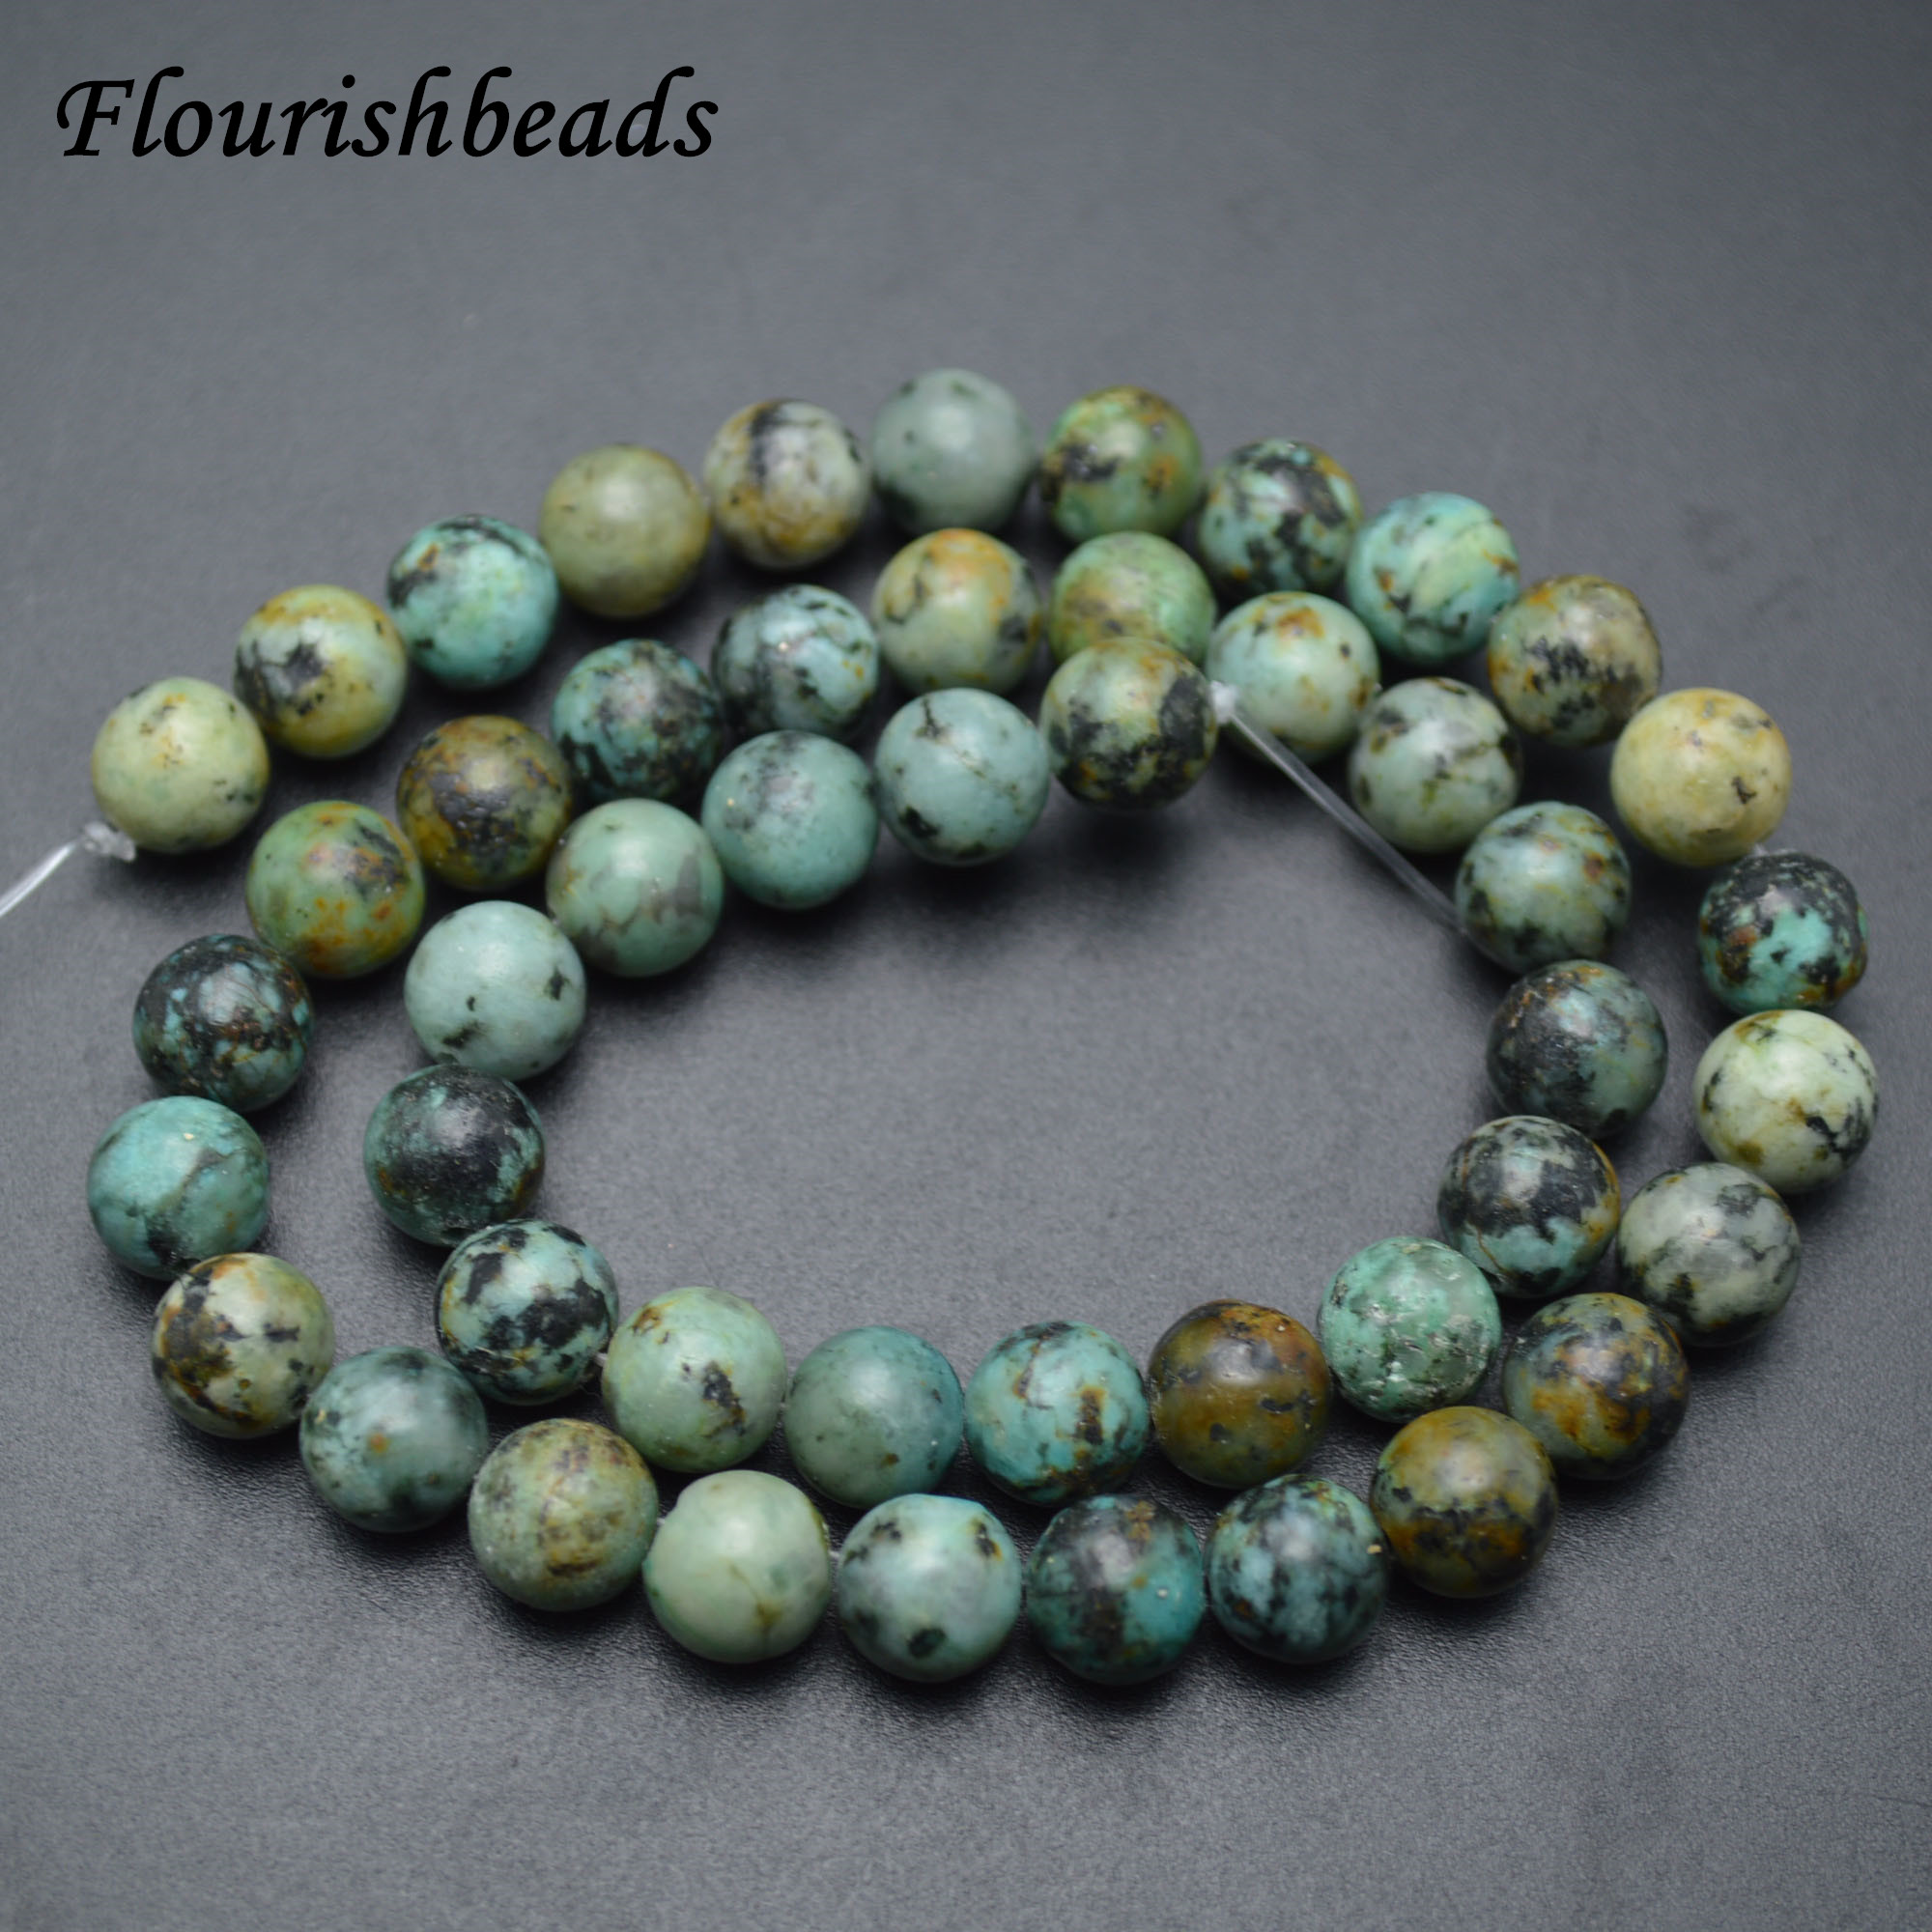 wholesale precious natural emerald img beads rondelle sapphire blue yellow faceted multi gemstone